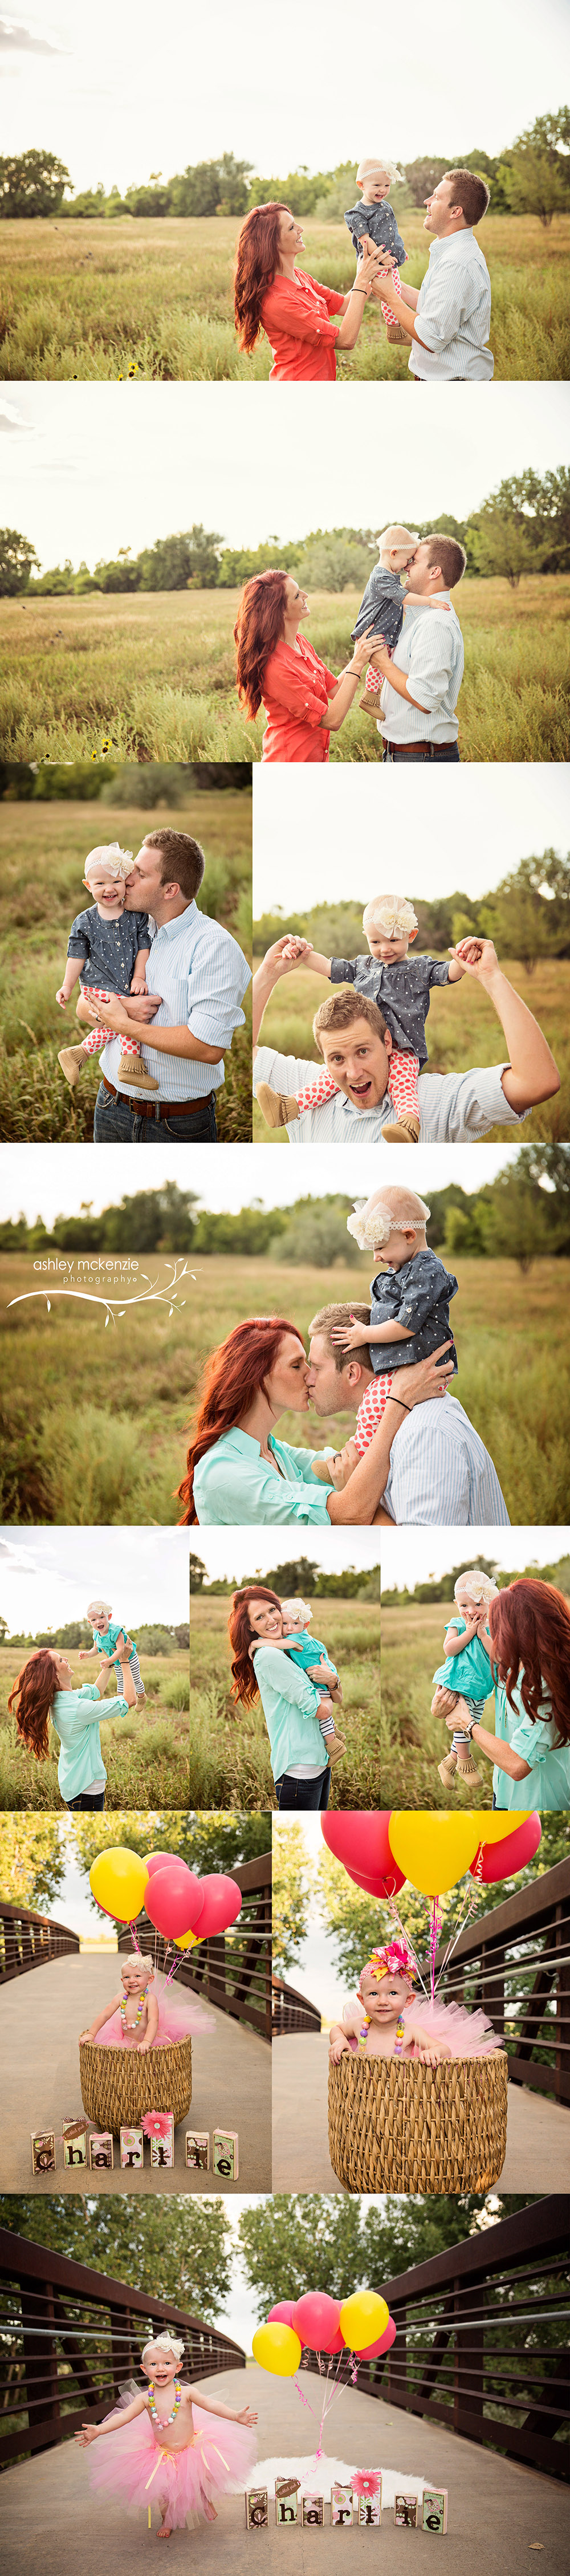 Family Photography by Ashley McKenzie Photography in Windsor, Colorado